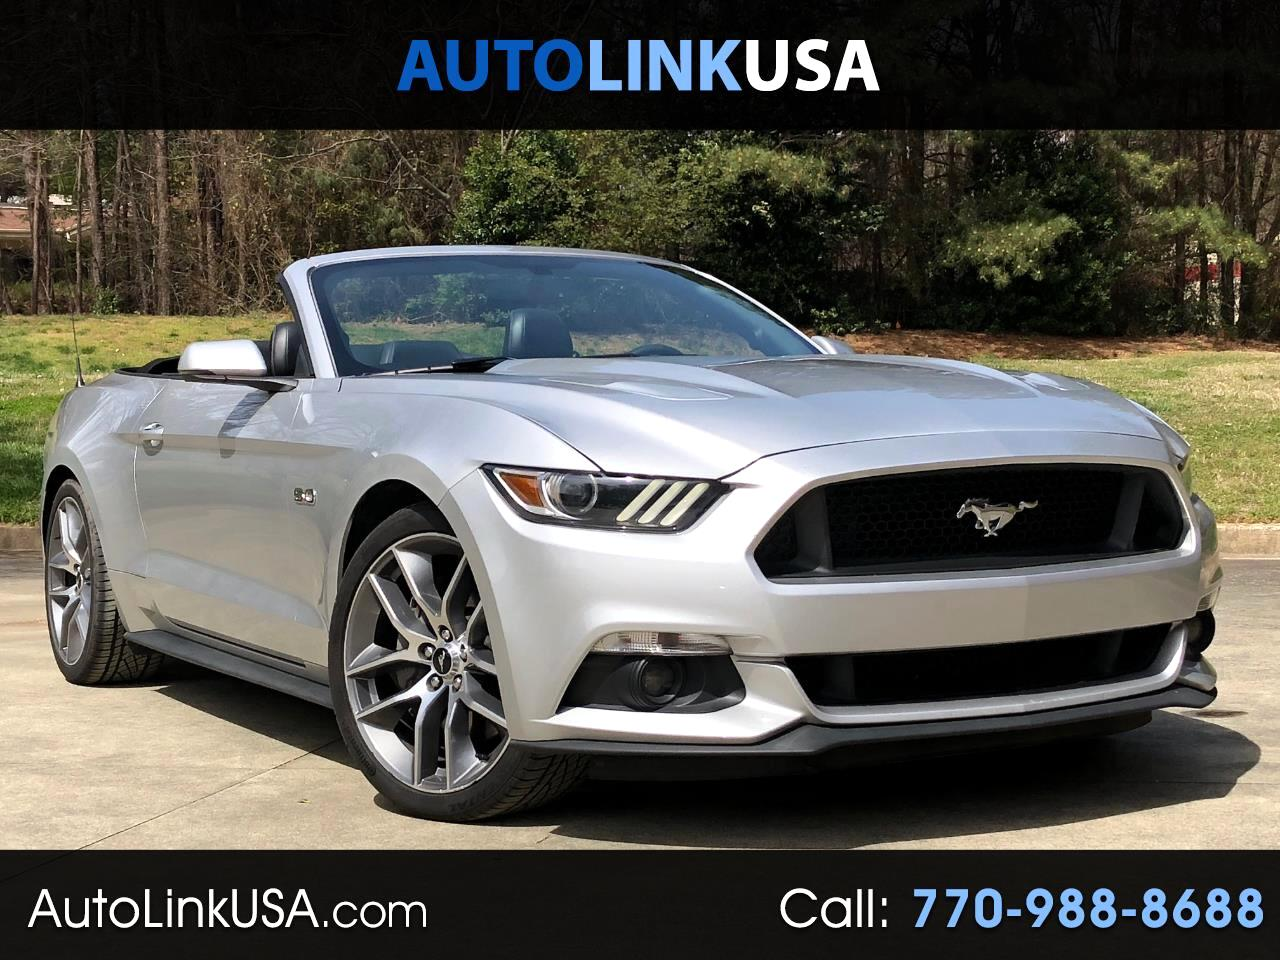 2016 Ford Mustang GT Prem. Convertible